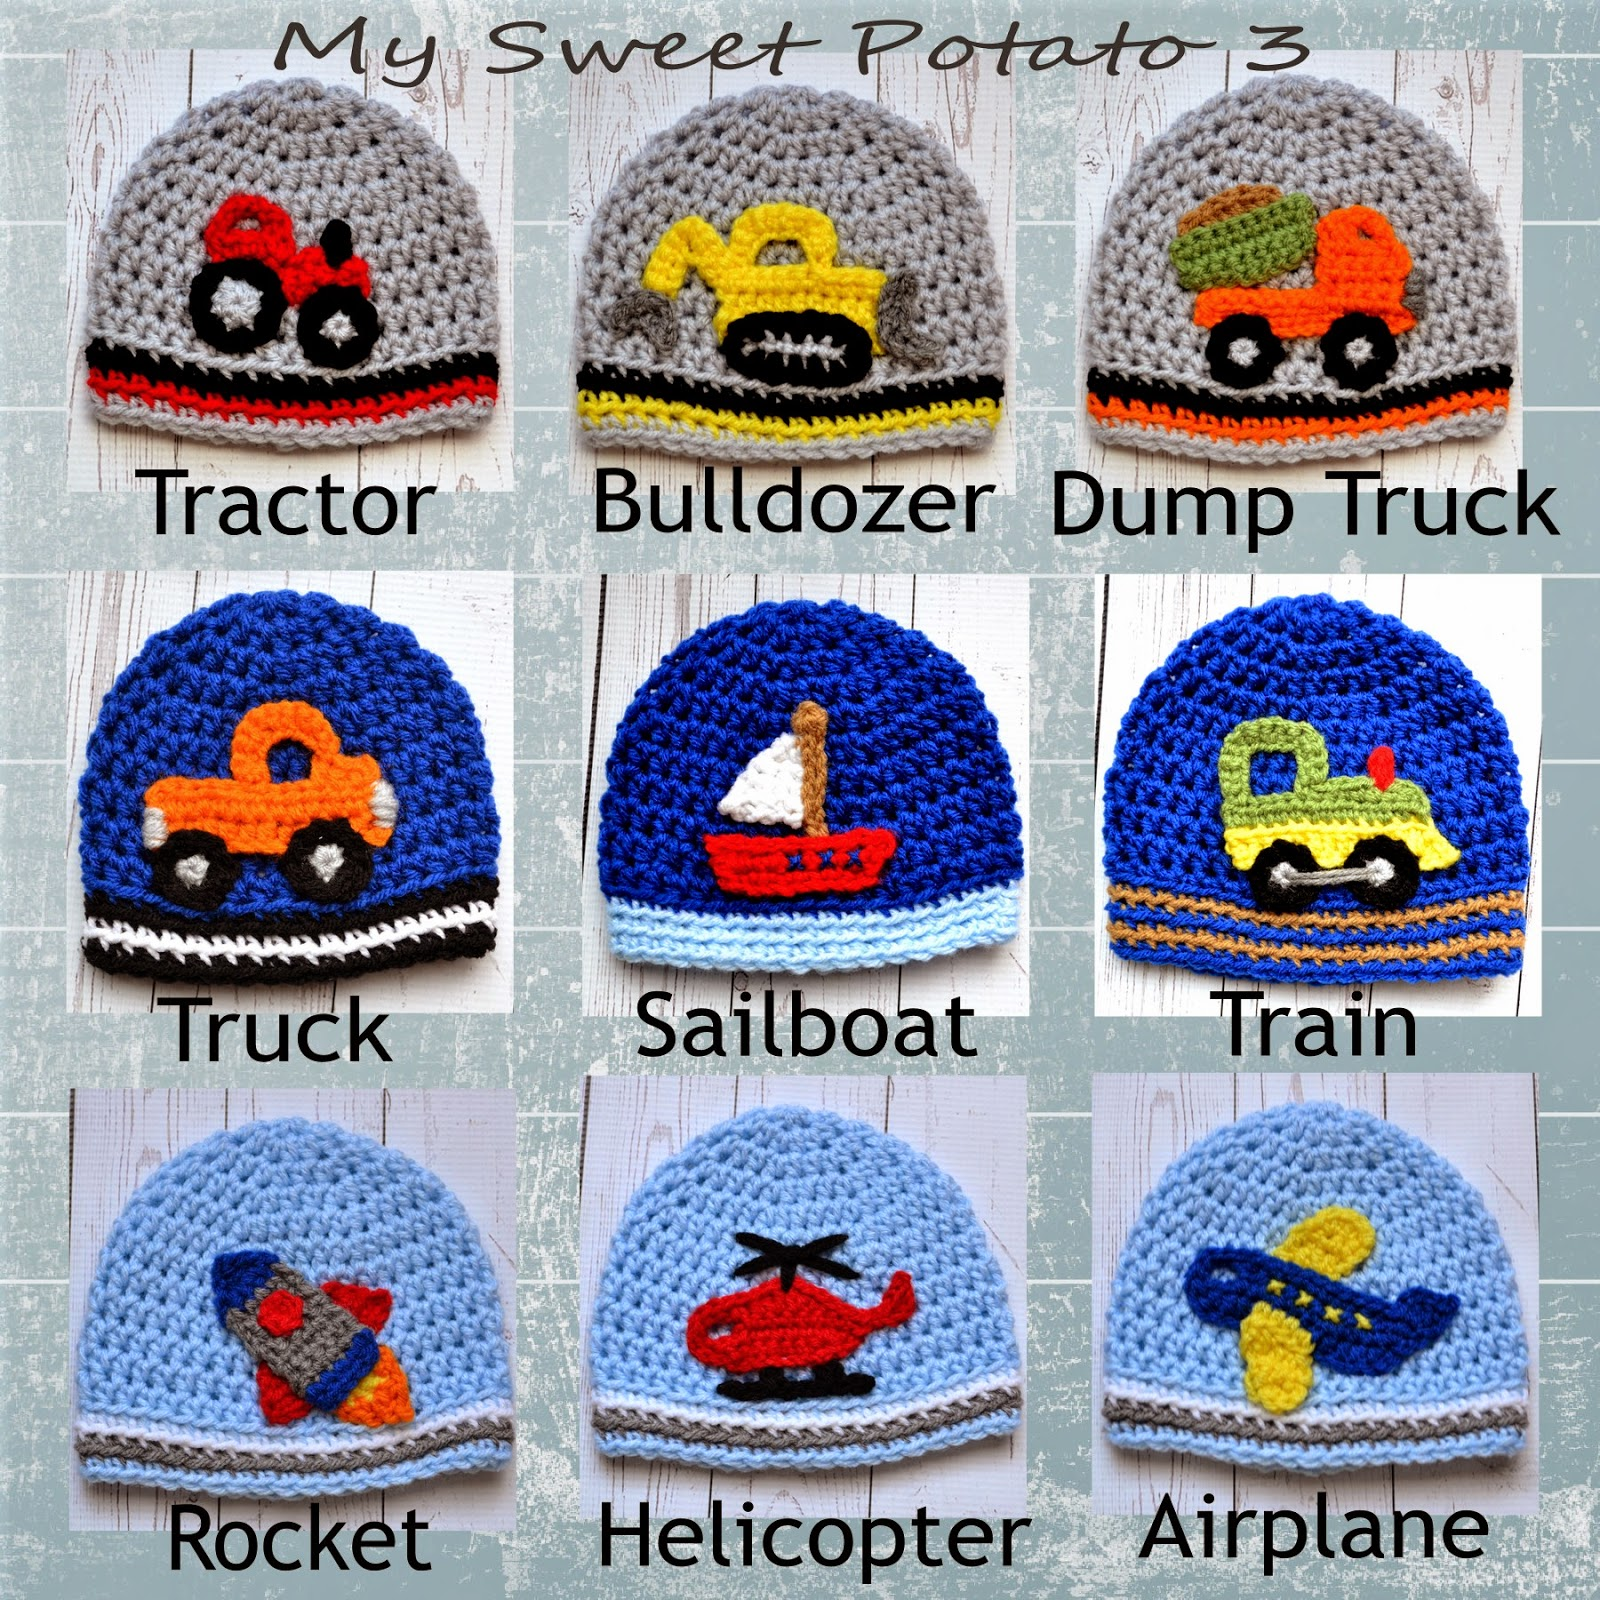 All Boy Applique Crochet Patterns